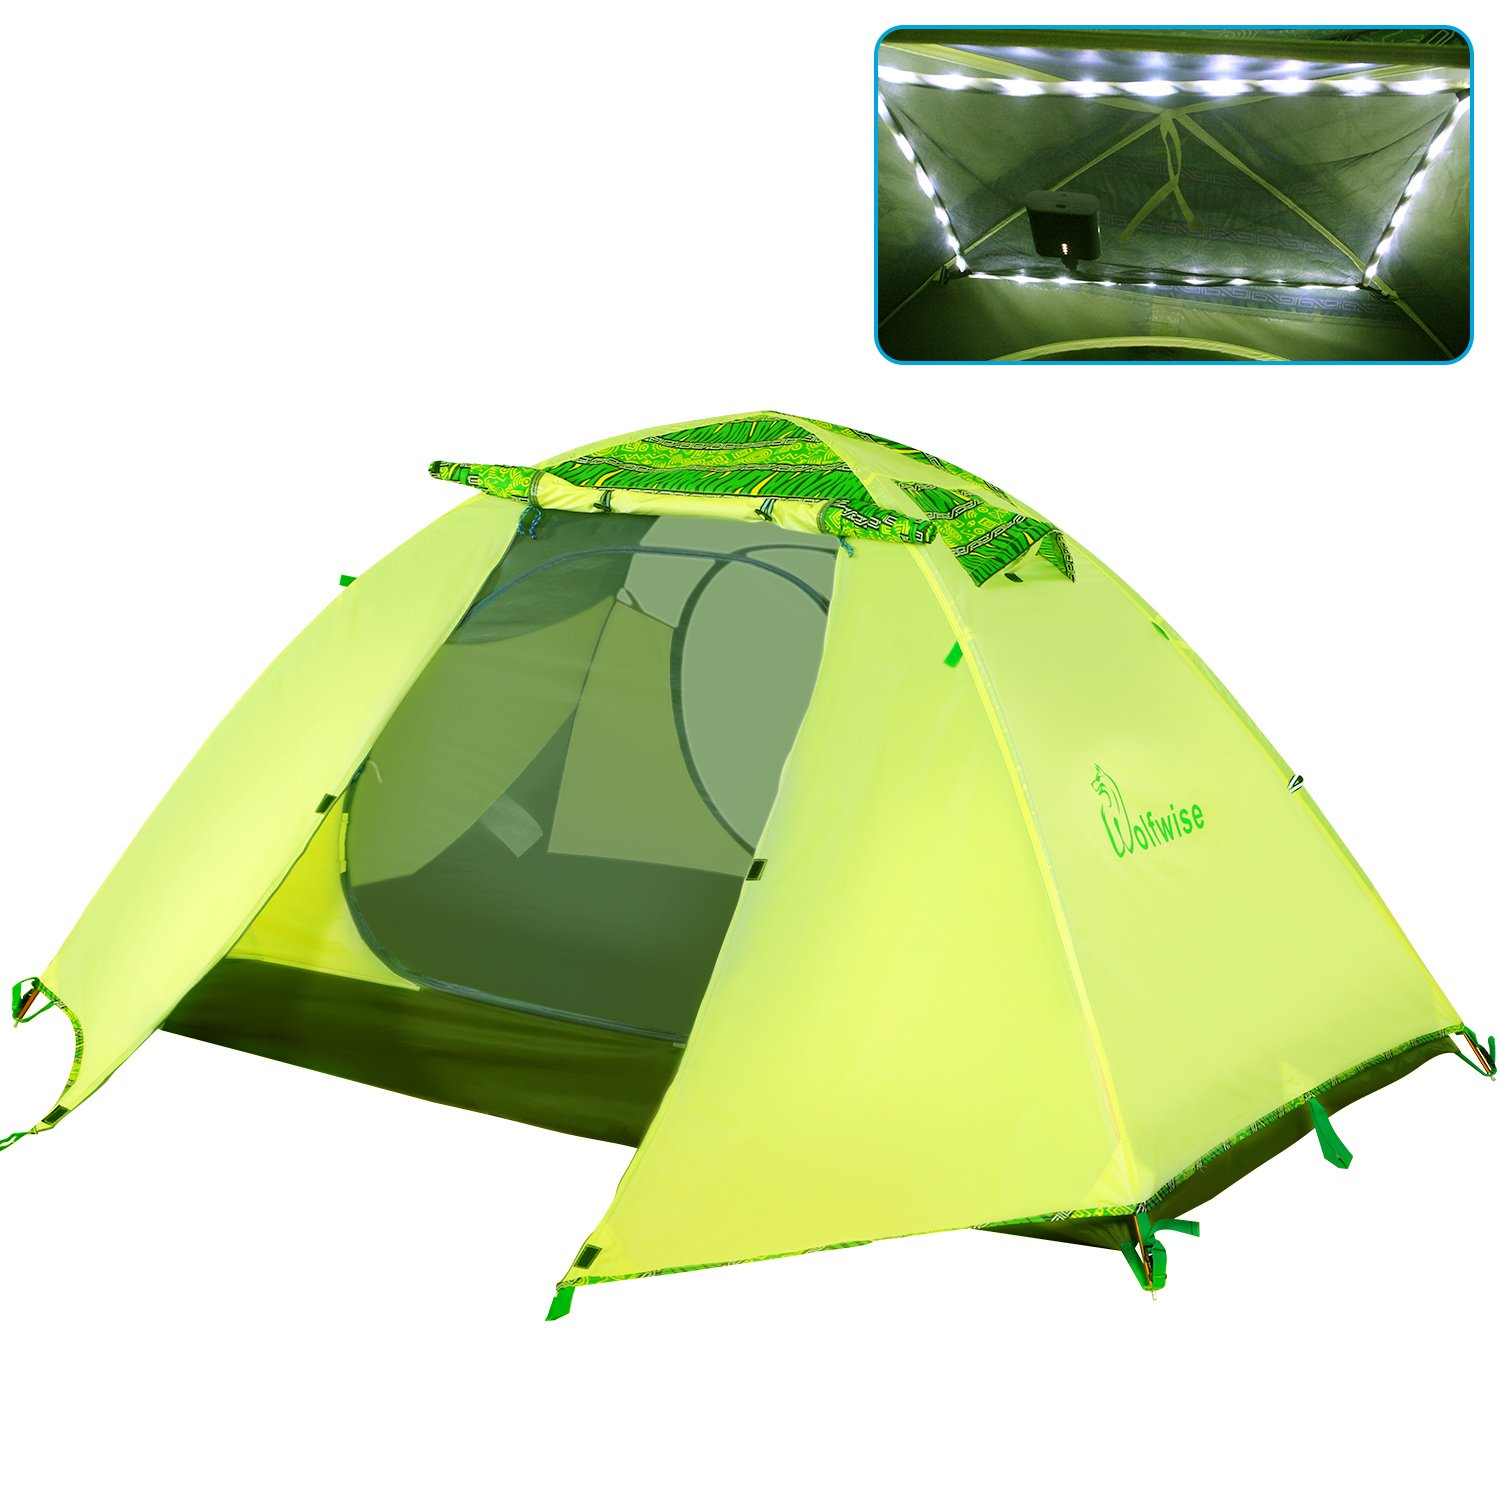 wolfwise 2 Person 4 Season Lightweight Backpacking Tent with USBのLEDメッシュキャノピー  グリーン B01LH1RT7C